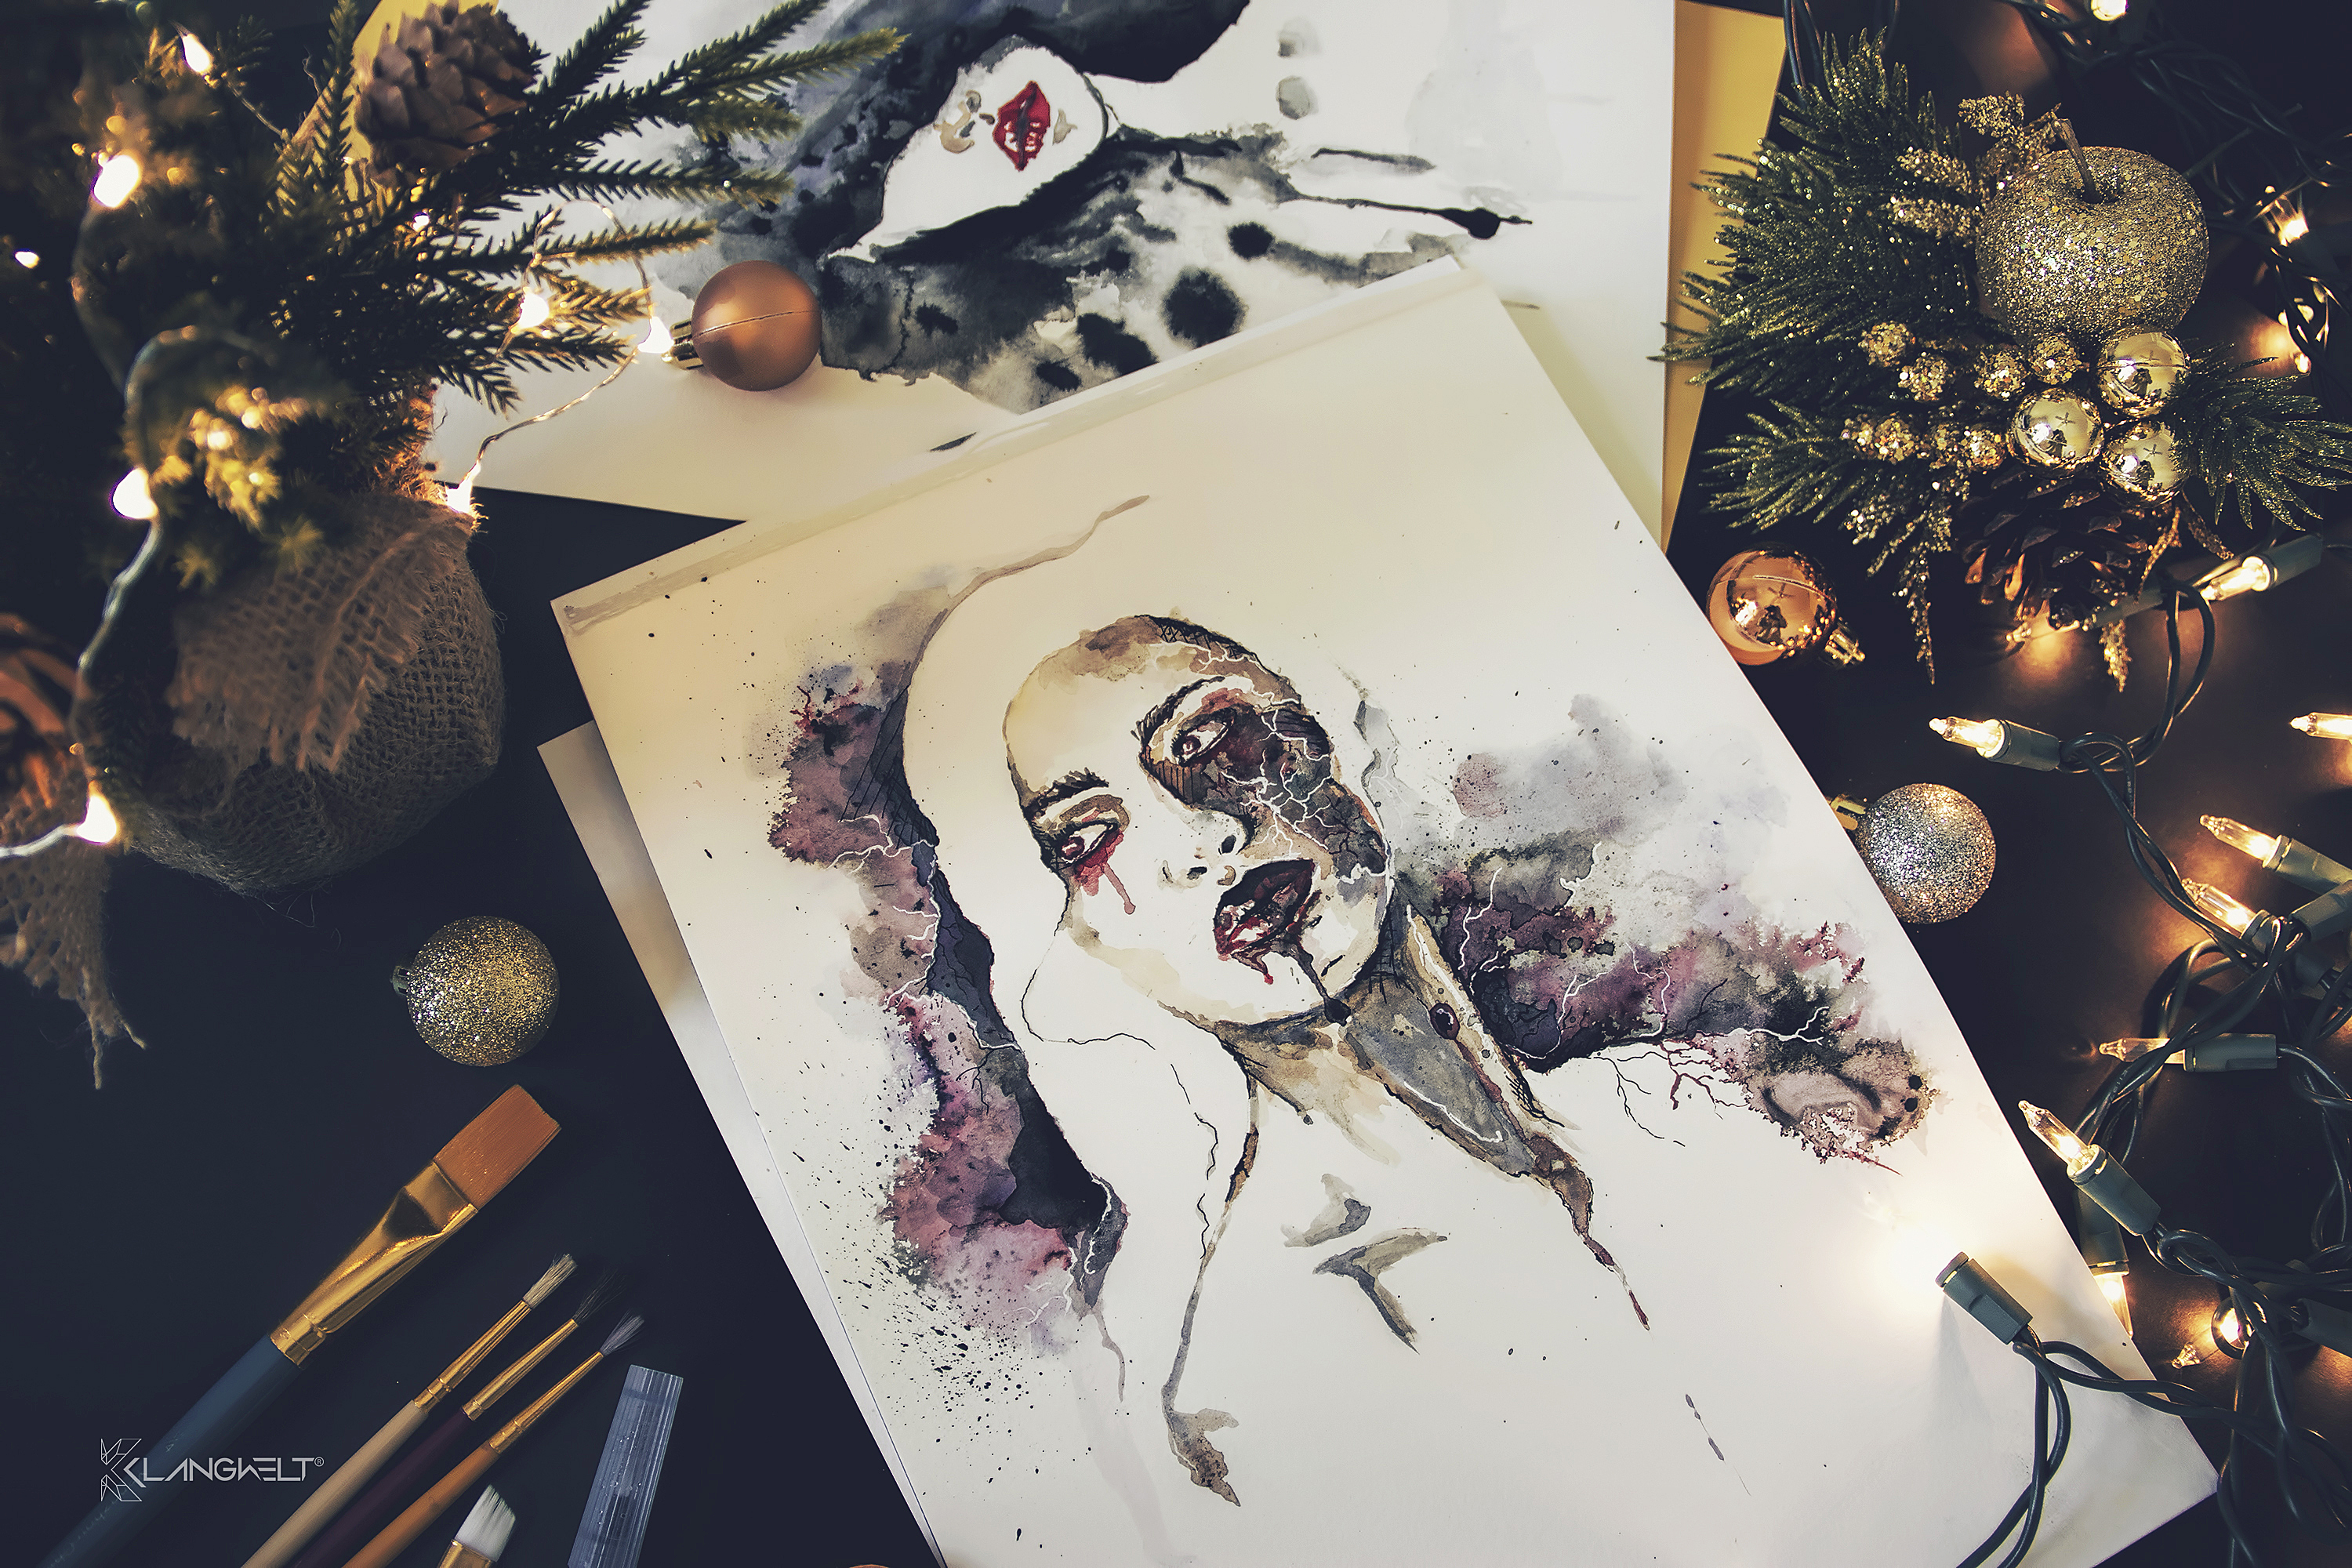 The Unknown Muse IV watercolor and ink artwork